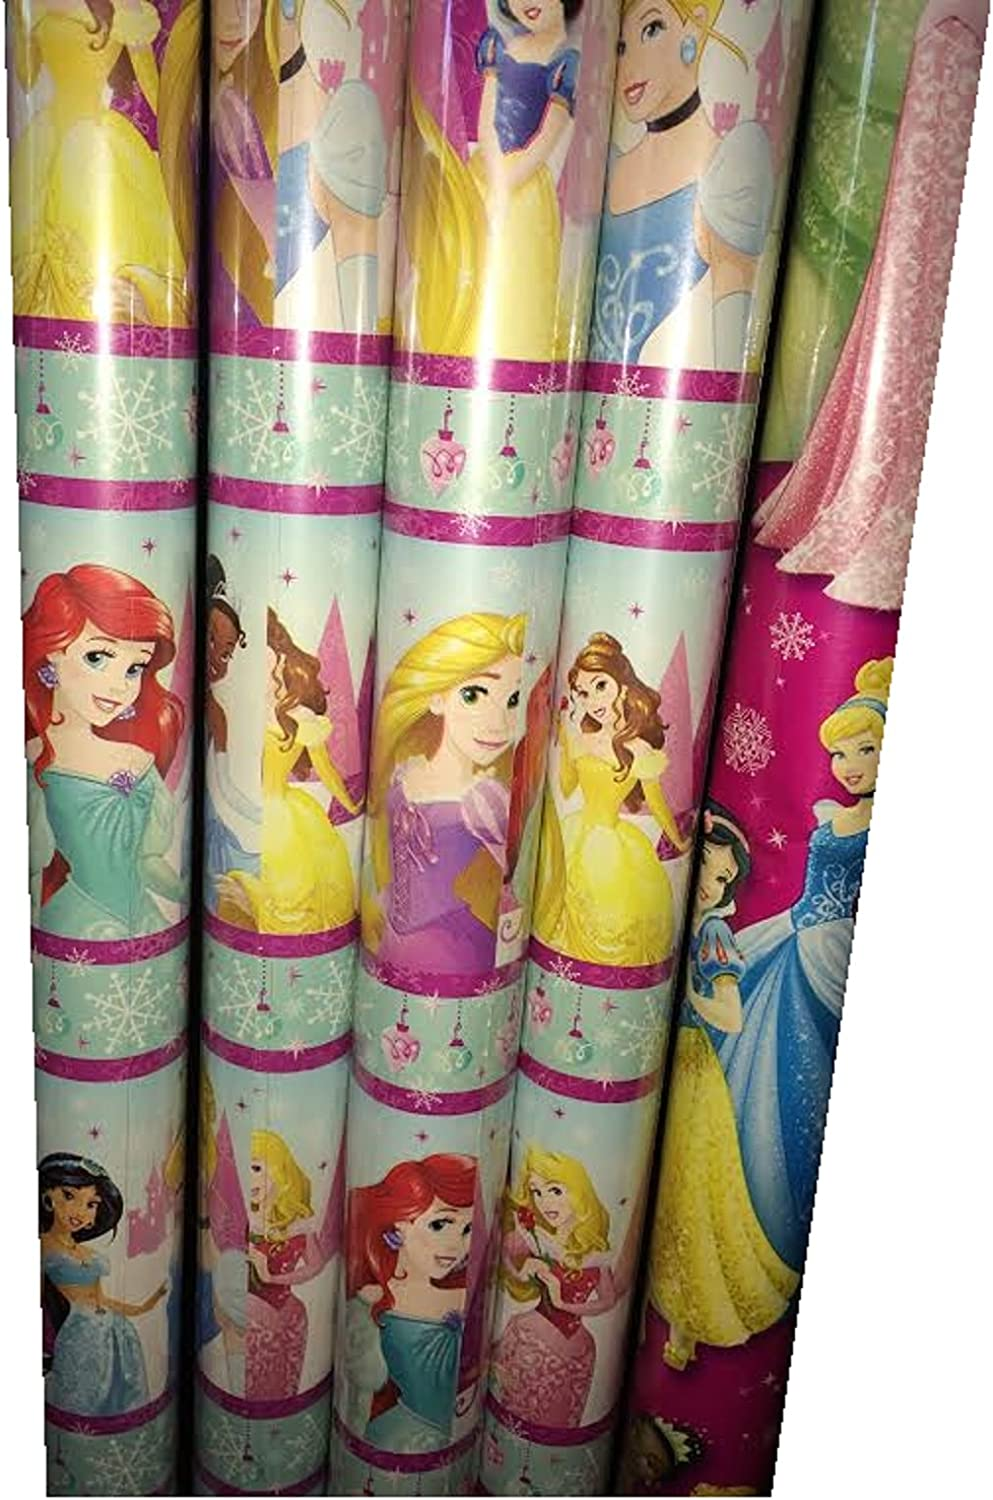 Amazon Com Disney Princess Christmas Extra Wide Gift Wrapping Paper Measures 70 Sq Ft Made In The Usa Home Kitchen